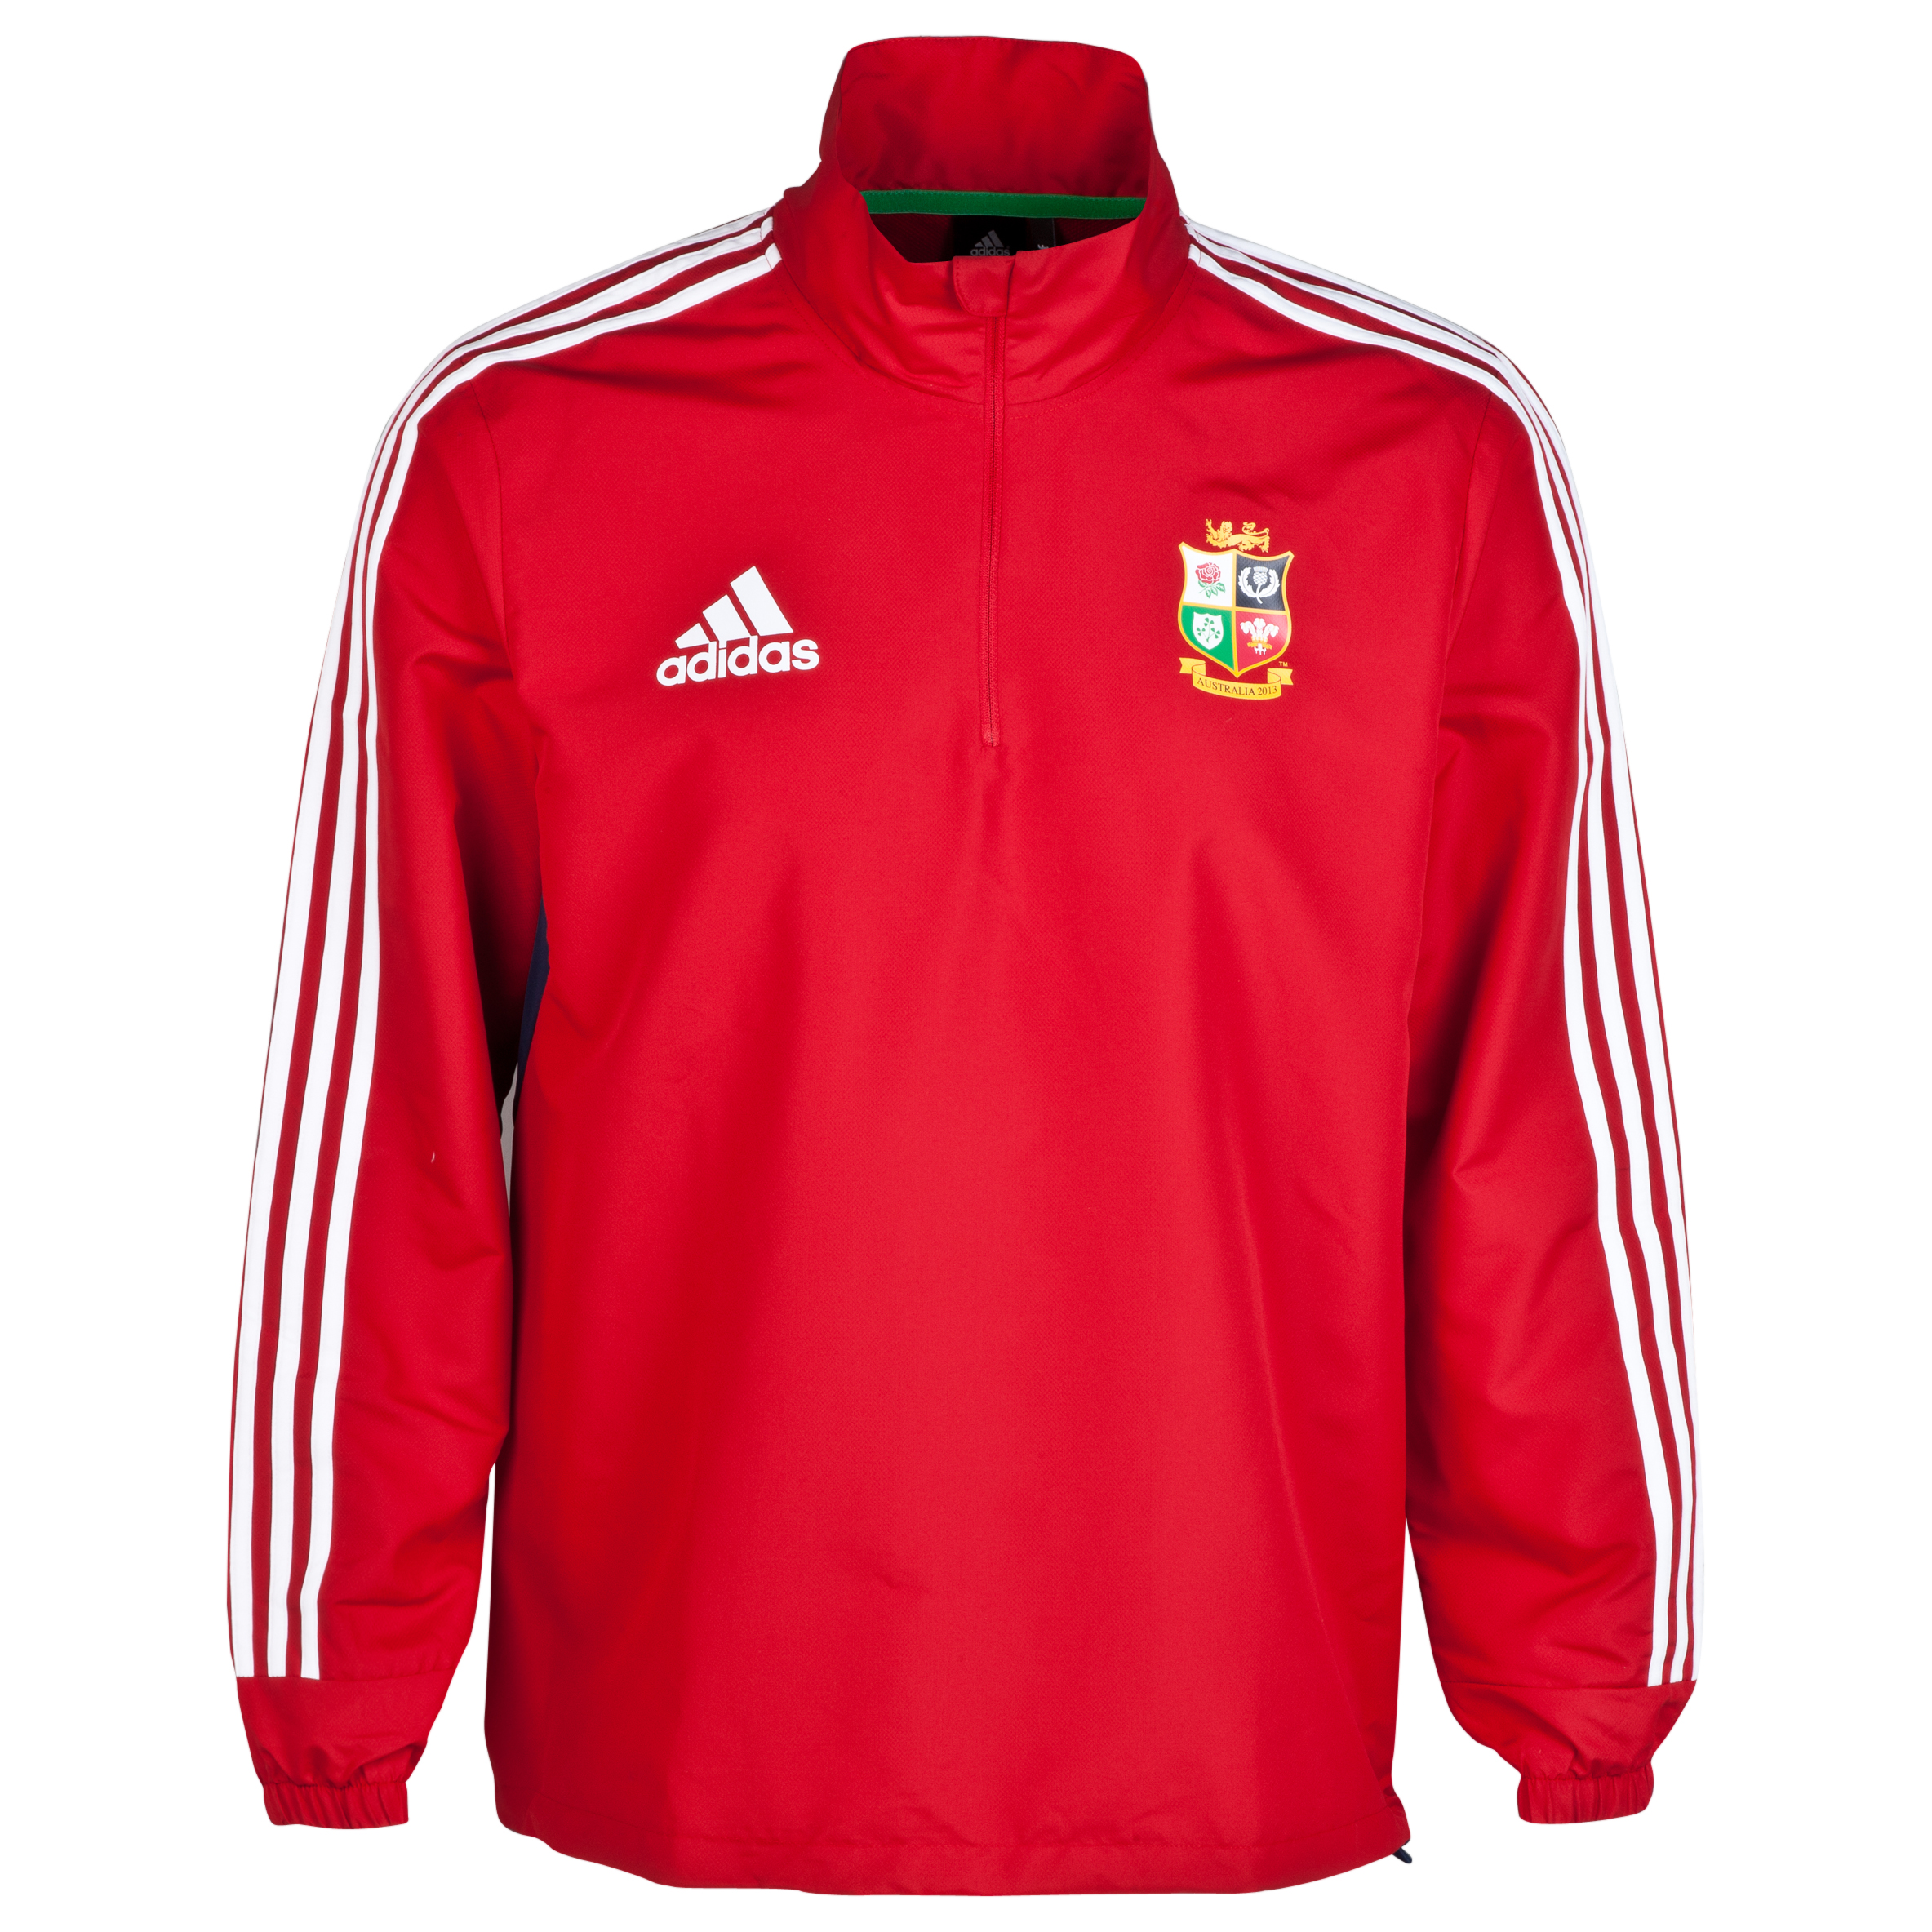 British & Irish Lions Wind Jacket - University Red/White